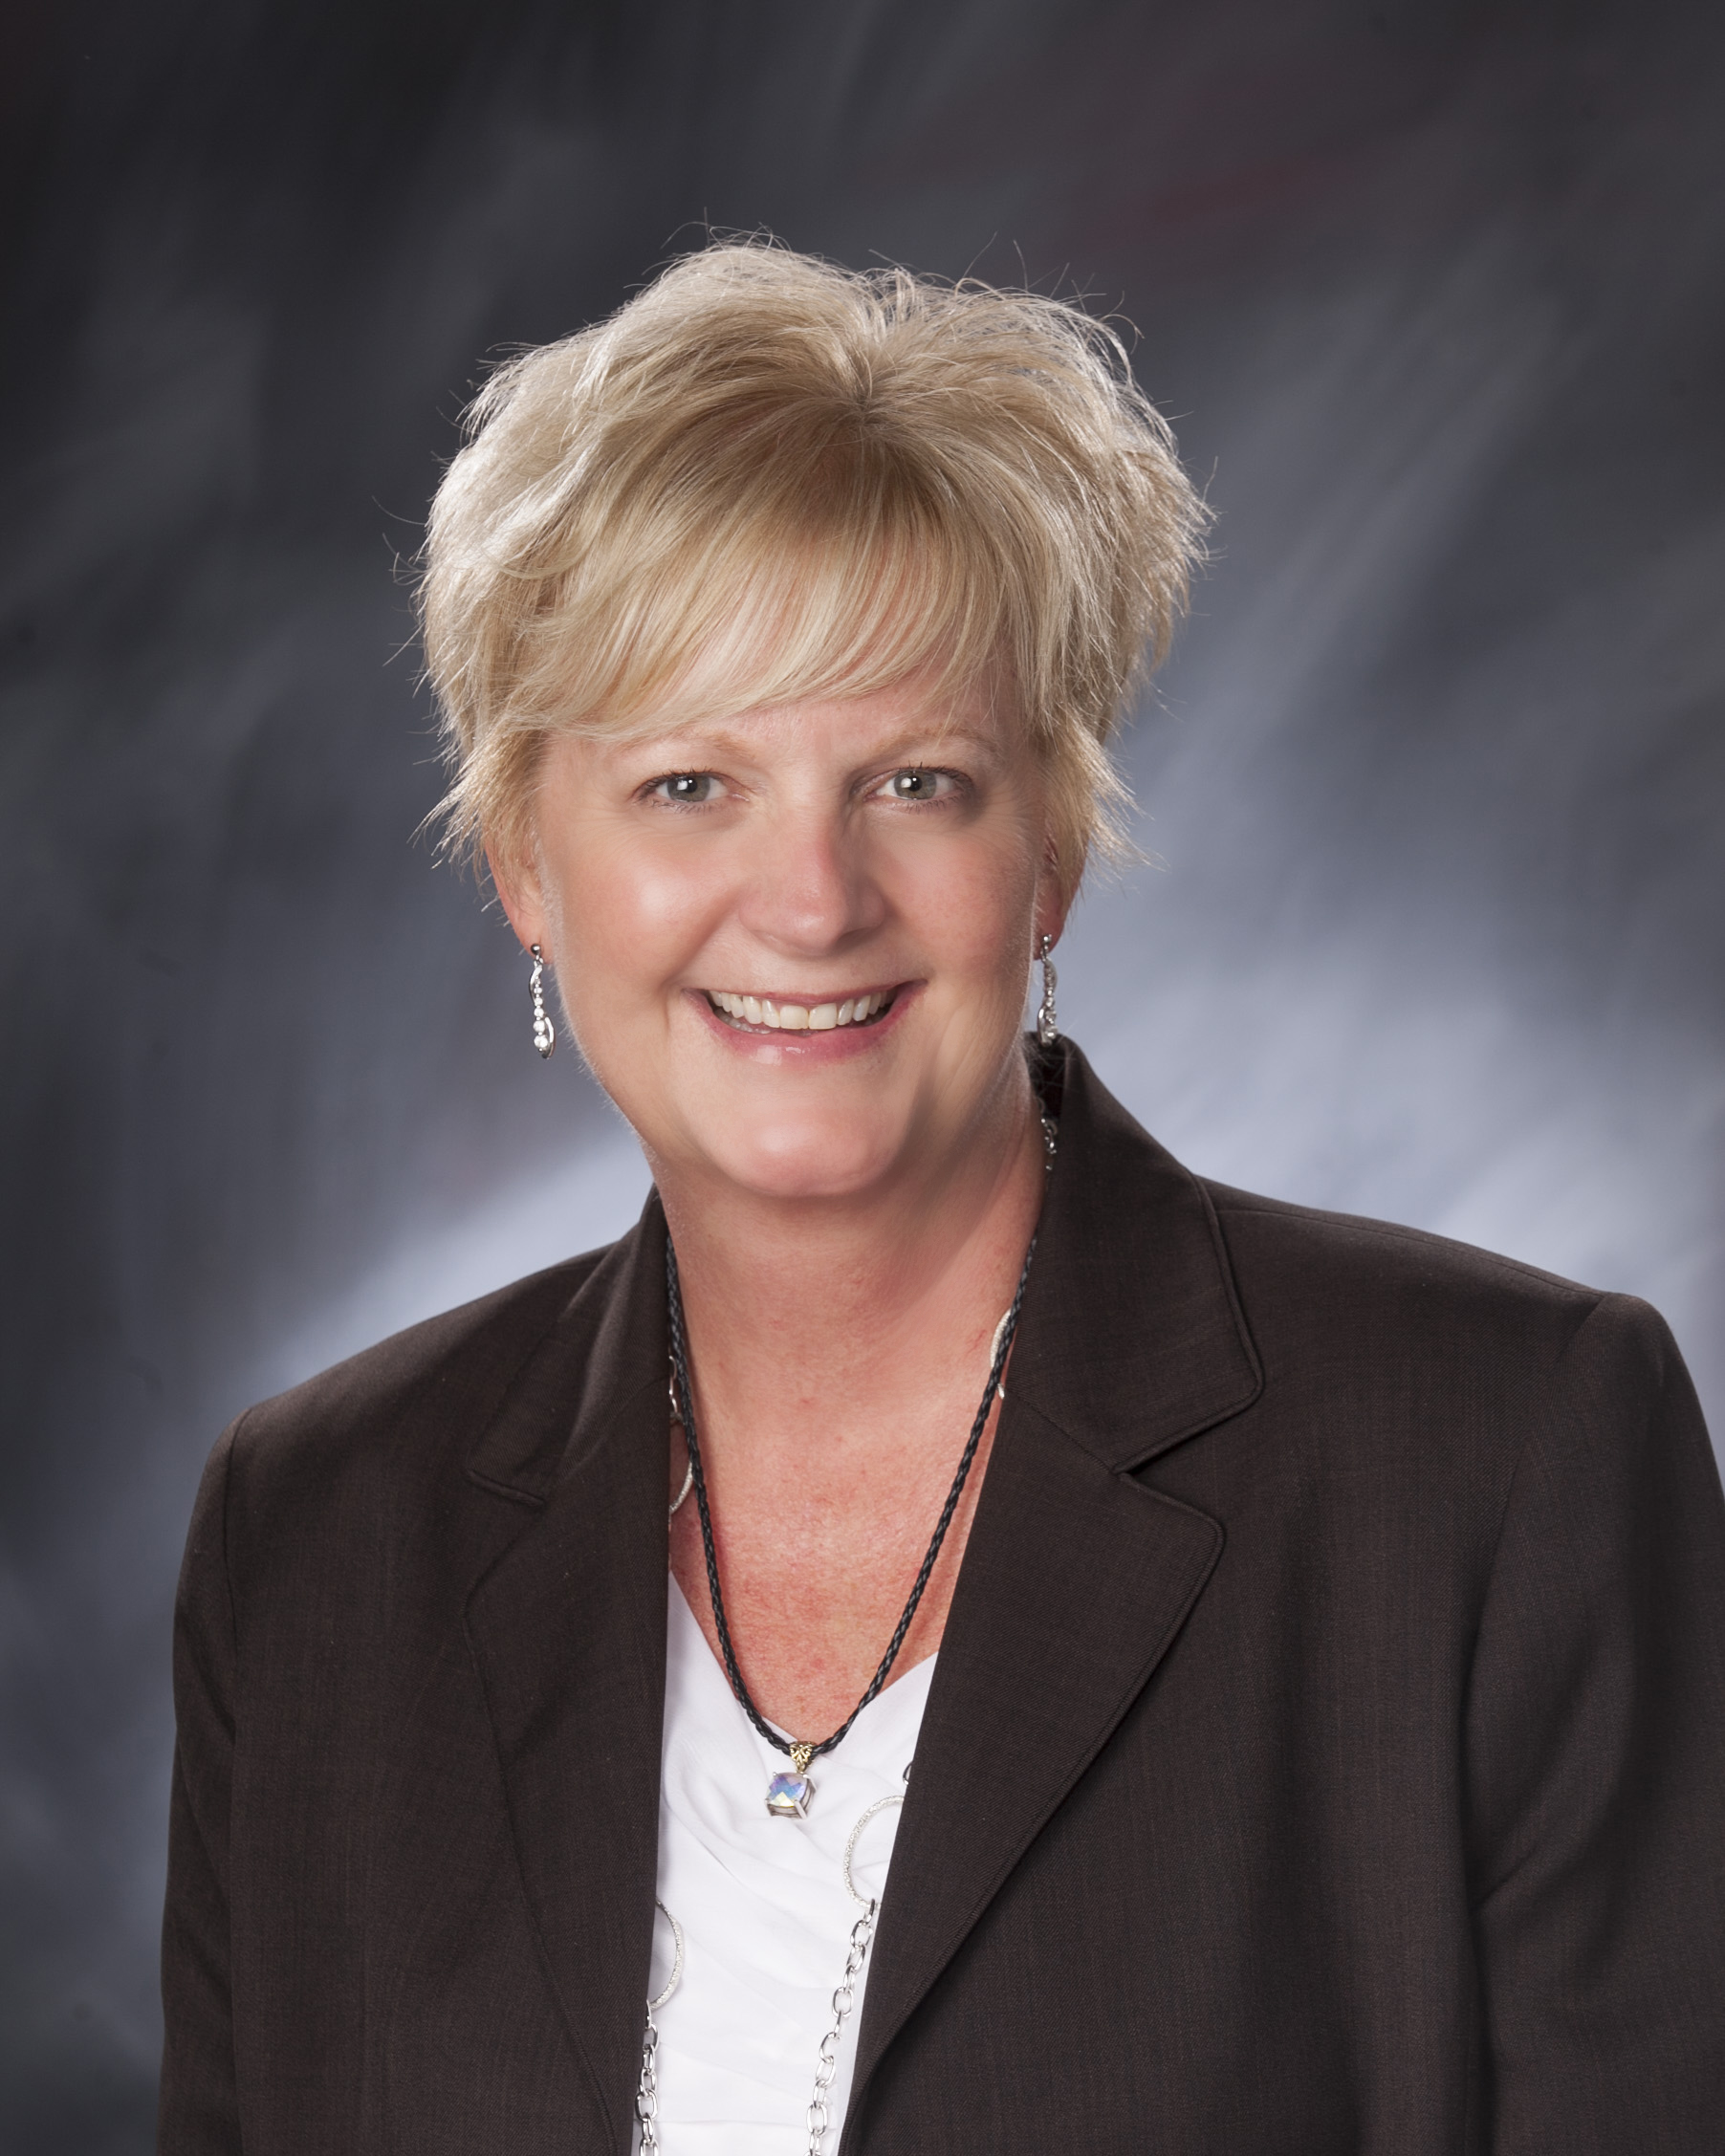 Linda moore is a certified audiologist working at ear specialists of